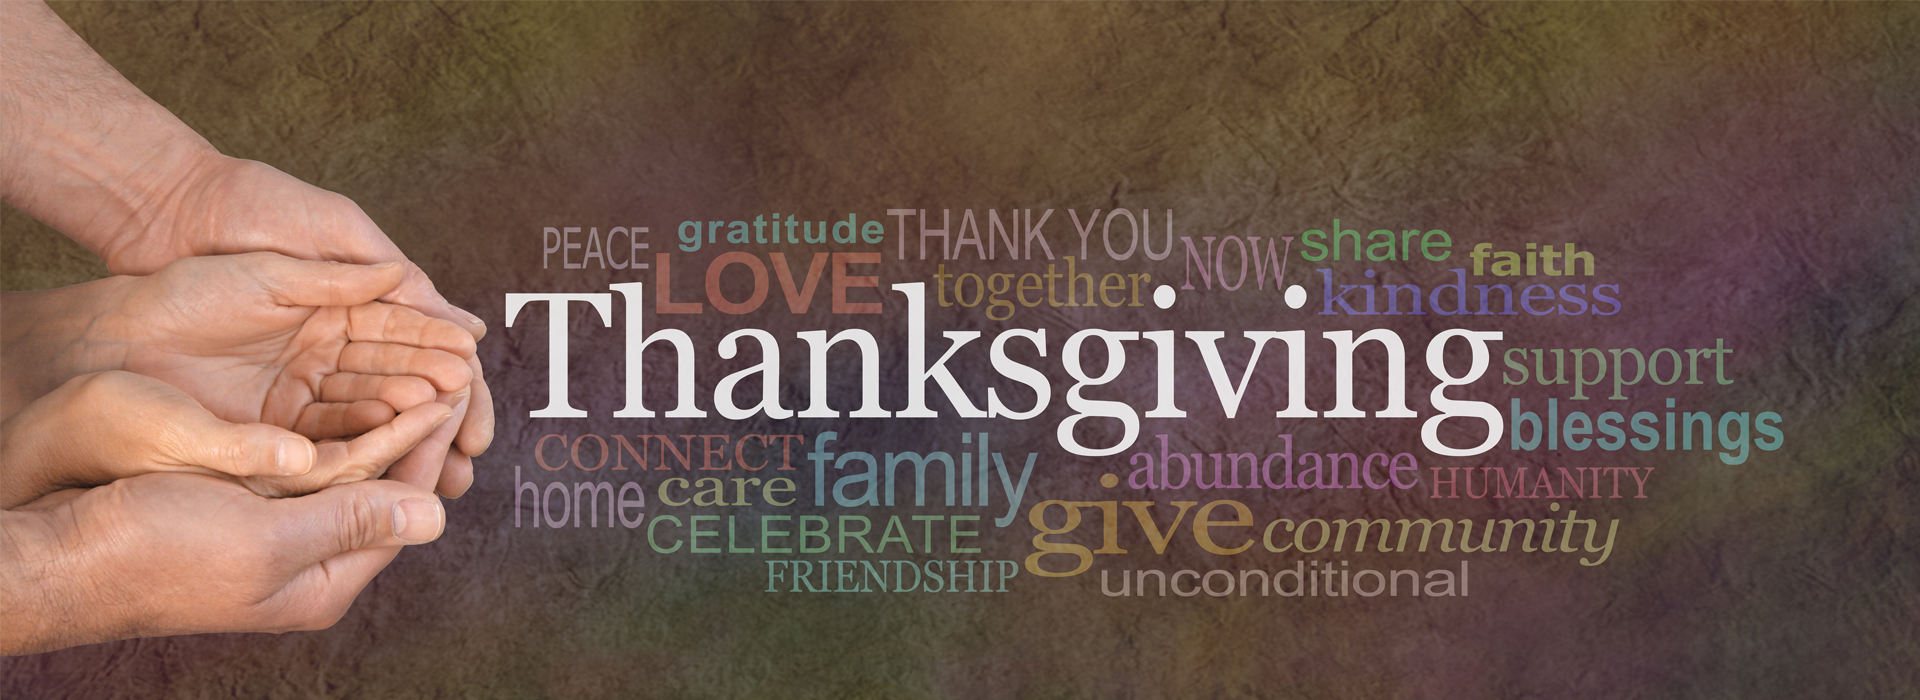 Image of Thanksgiving messages